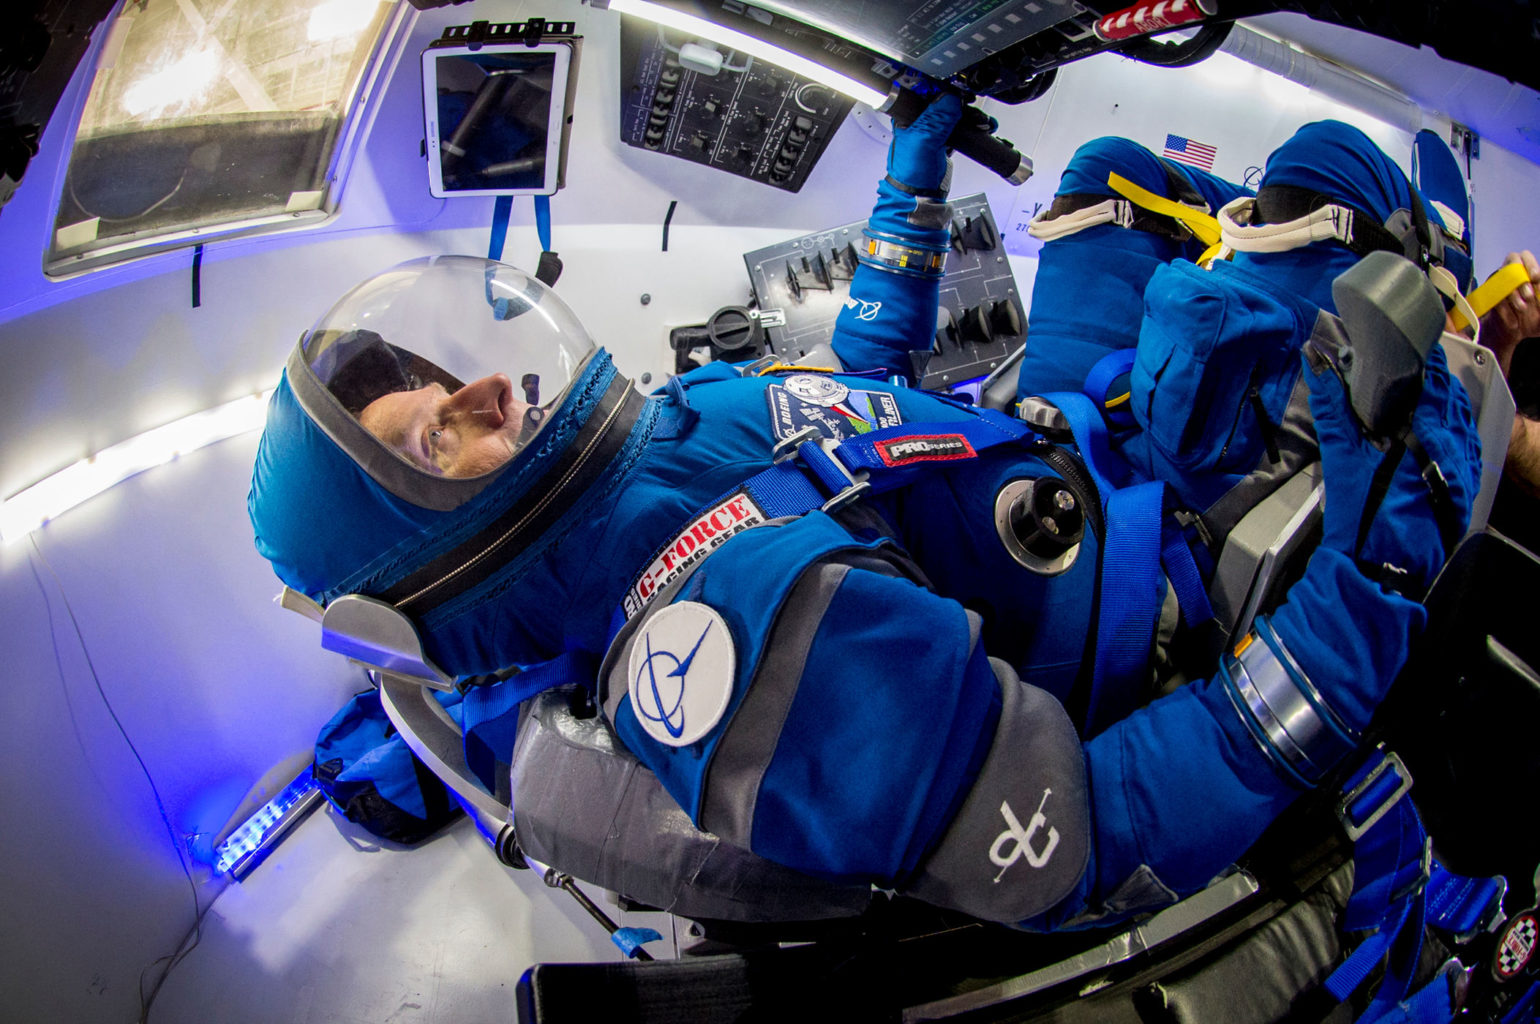 BOEING'S NEW STARLINER SPACESUITS